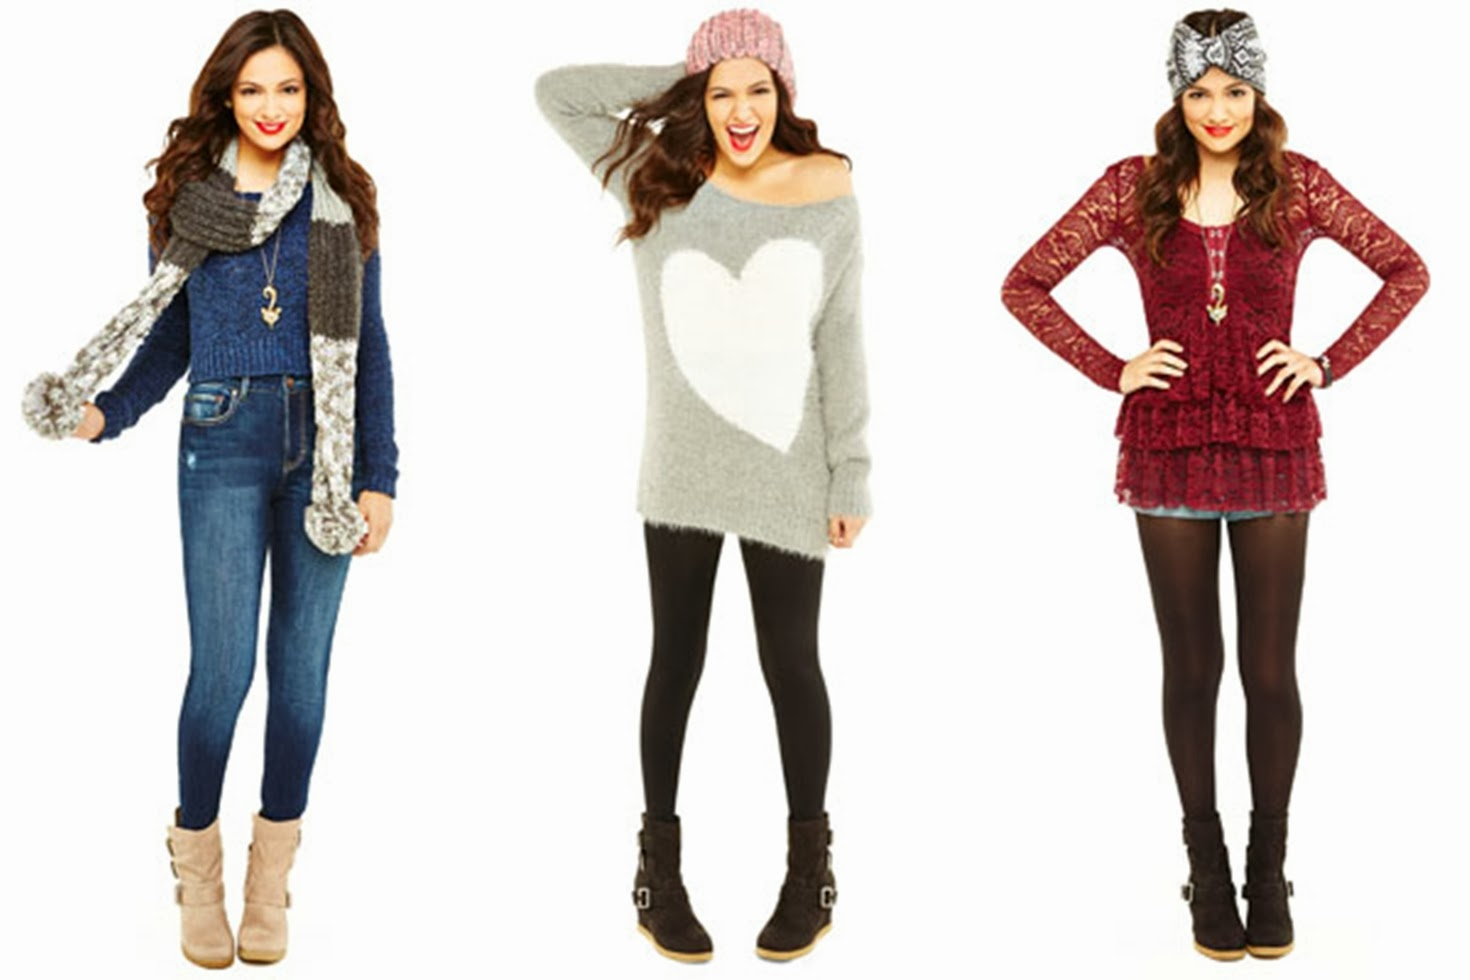 Teen Styles Teen Trends Fashion New Years